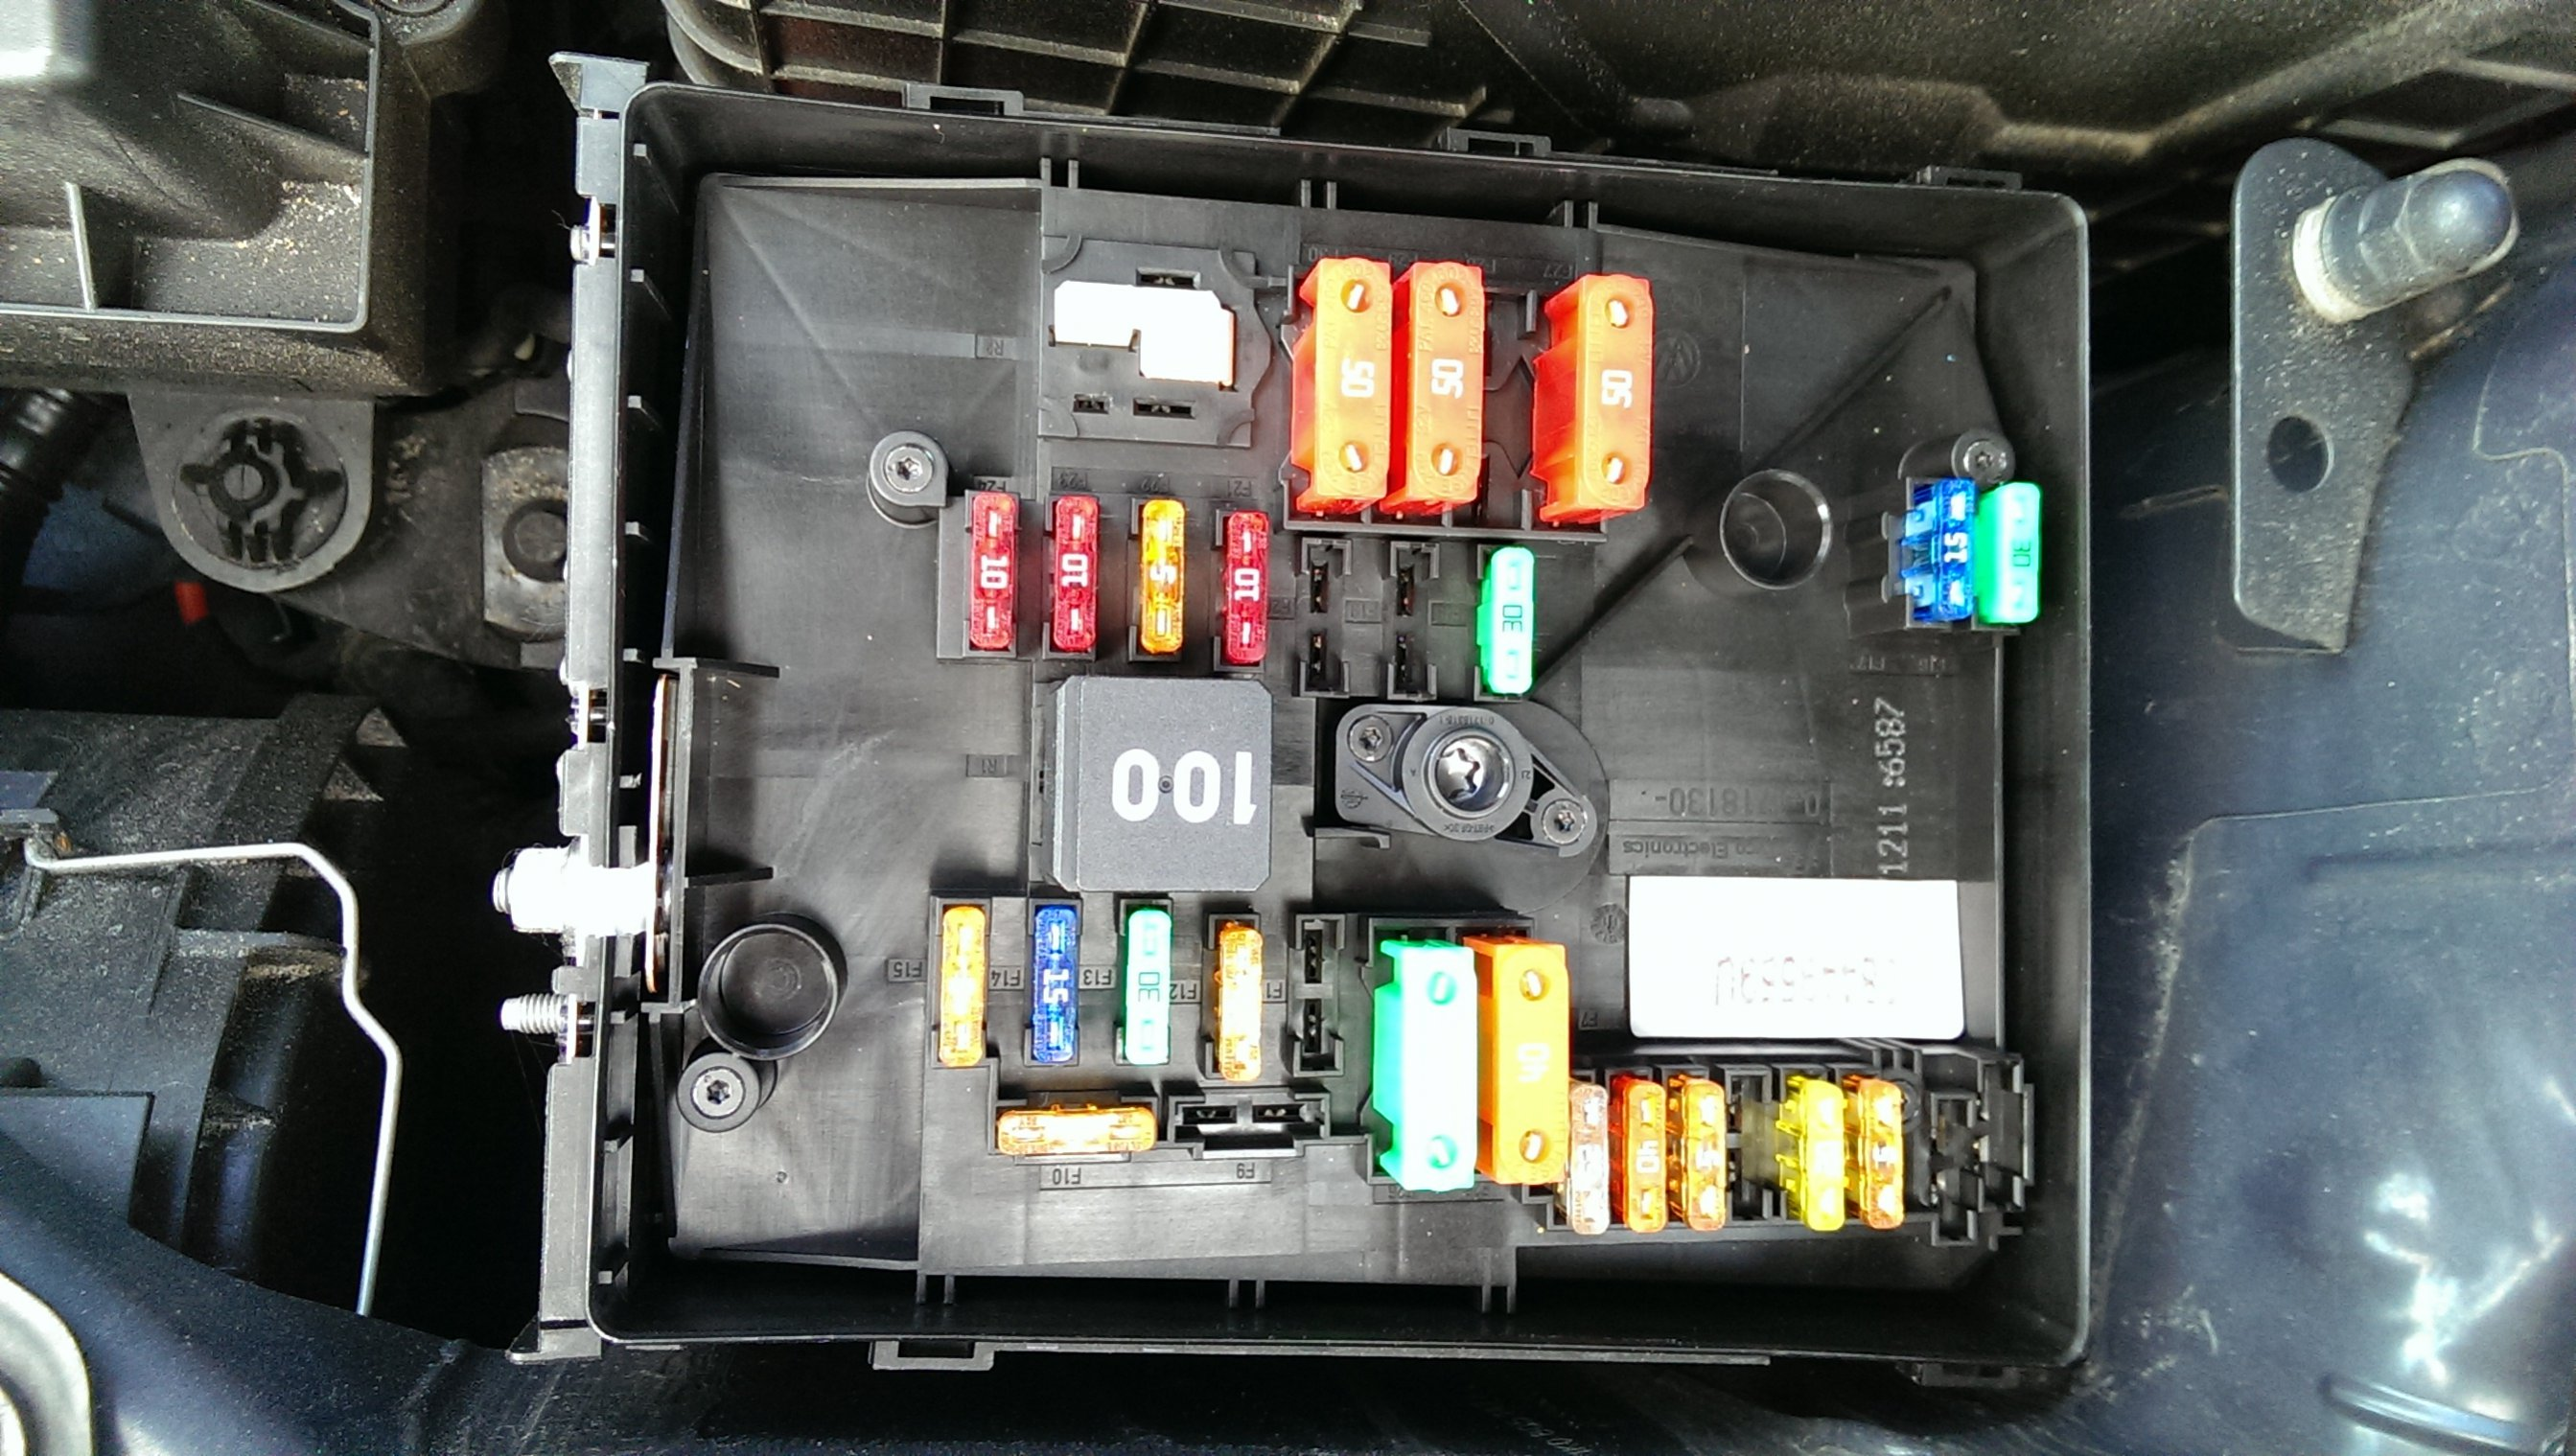 Electrical also 2012 Volkswagen Tiguan Fuse Box Diagram also Vw Golf Mk1 Fuse Box Layout likewise 1983 Monte Carlo Fuse Box Diagram likewise 1988 Vw Jetta Fuse Box. on volkswagen jetta mk1 1979 1983 fuse box diagram